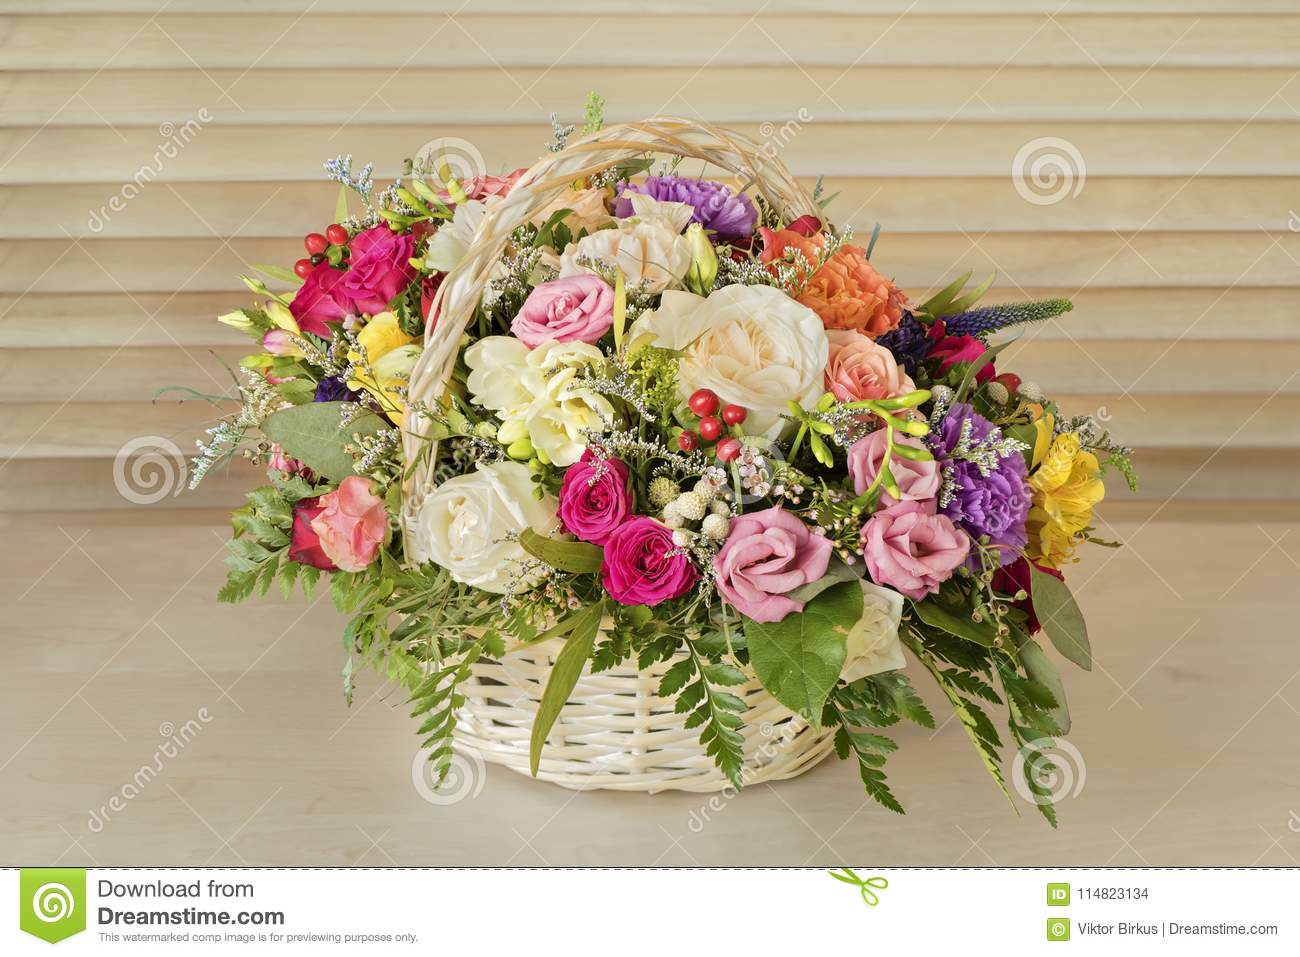 Bouquet Of Flowers Multi Colored Roses With Green Leaves Stands